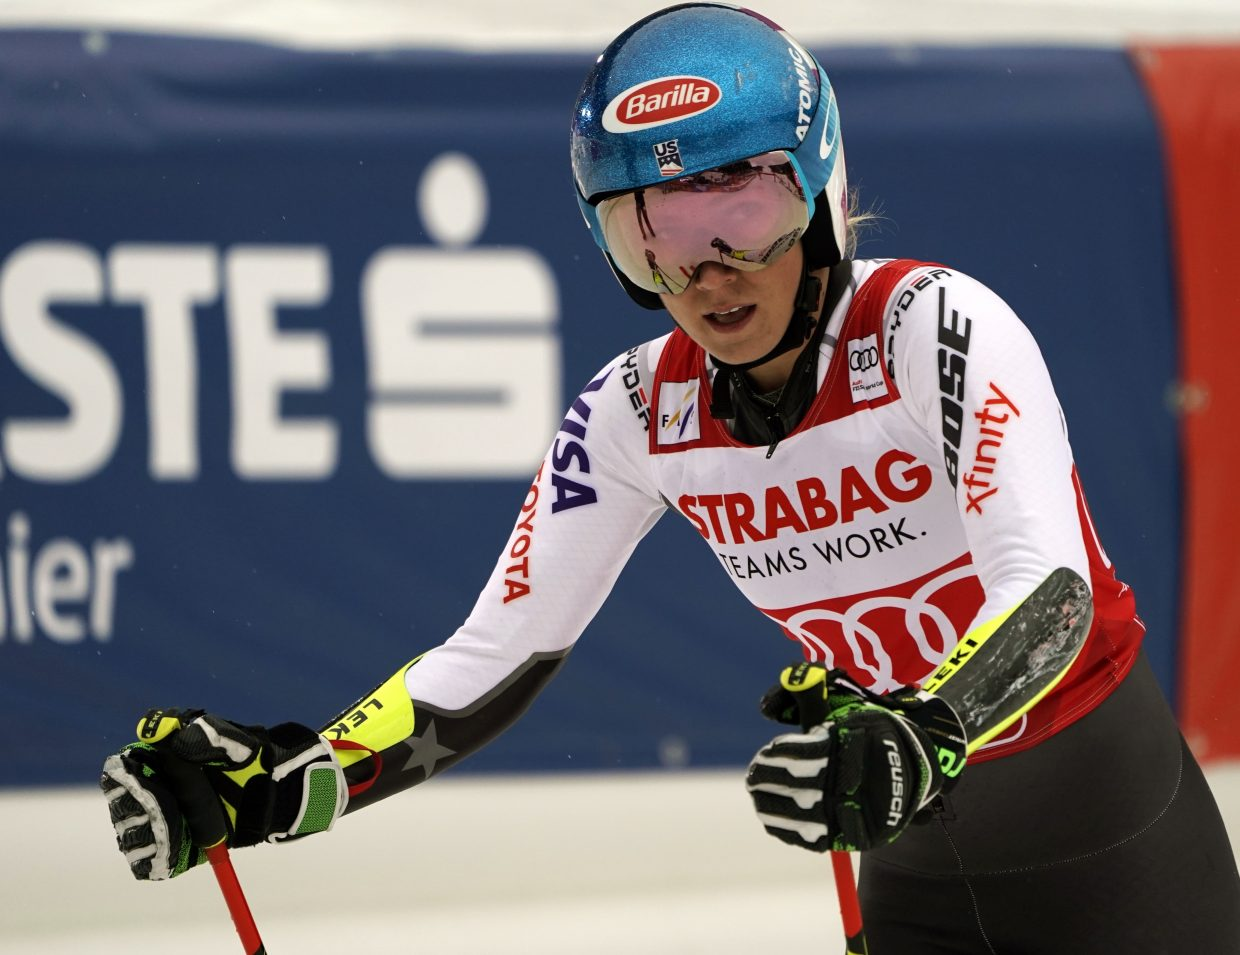 Mikaela Shiffrin reacts after her first run during women's World Cup giant slalom in Spindleruv Mlyn, Czech Republic, on Friday. After a disappointing first run, she recorded the fastest time in the afternoon to finish in third place.